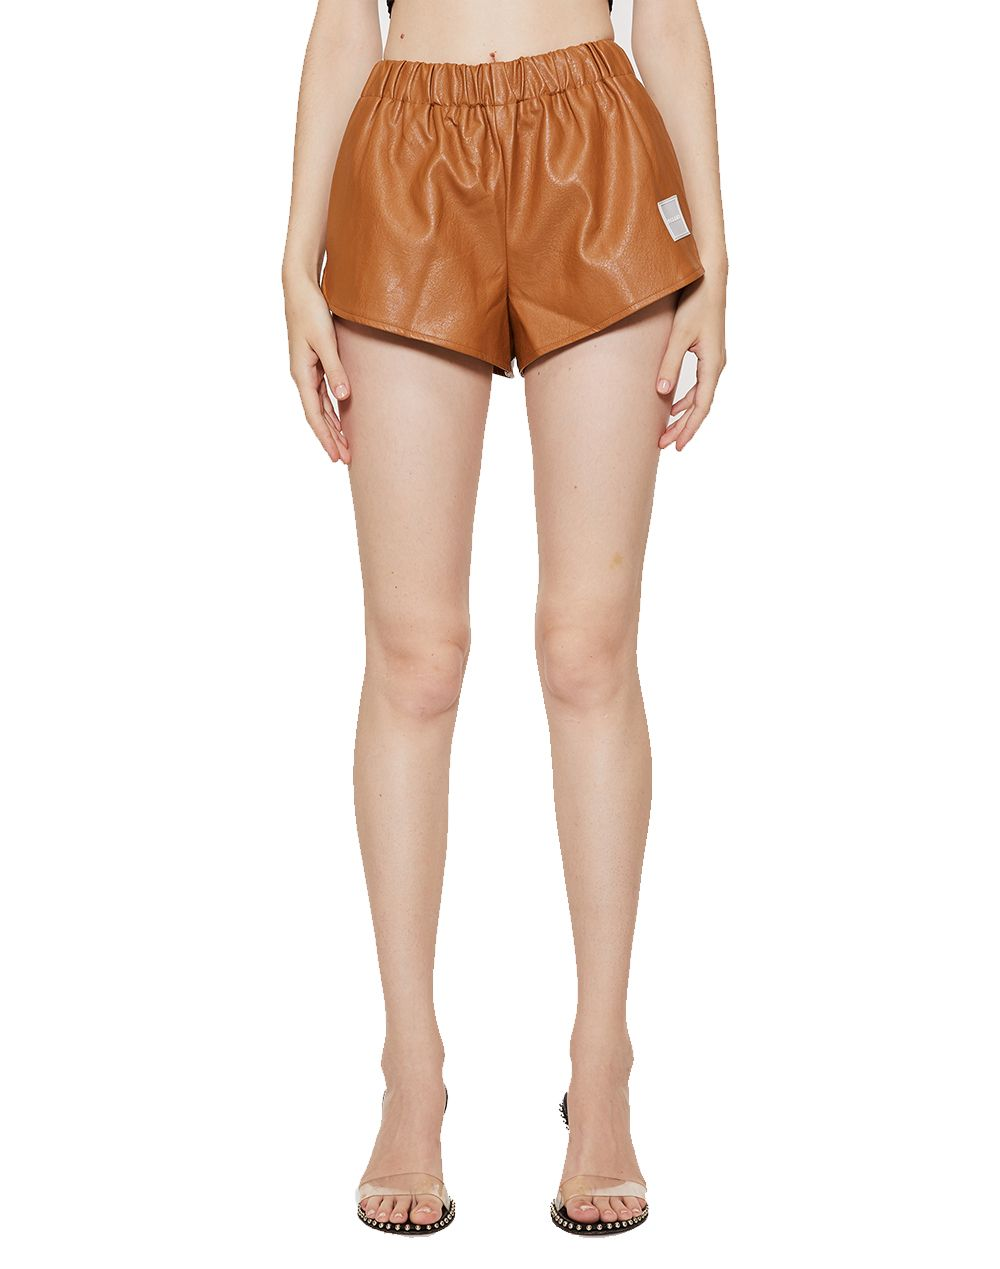 Y-Club Leather Short-YUYU